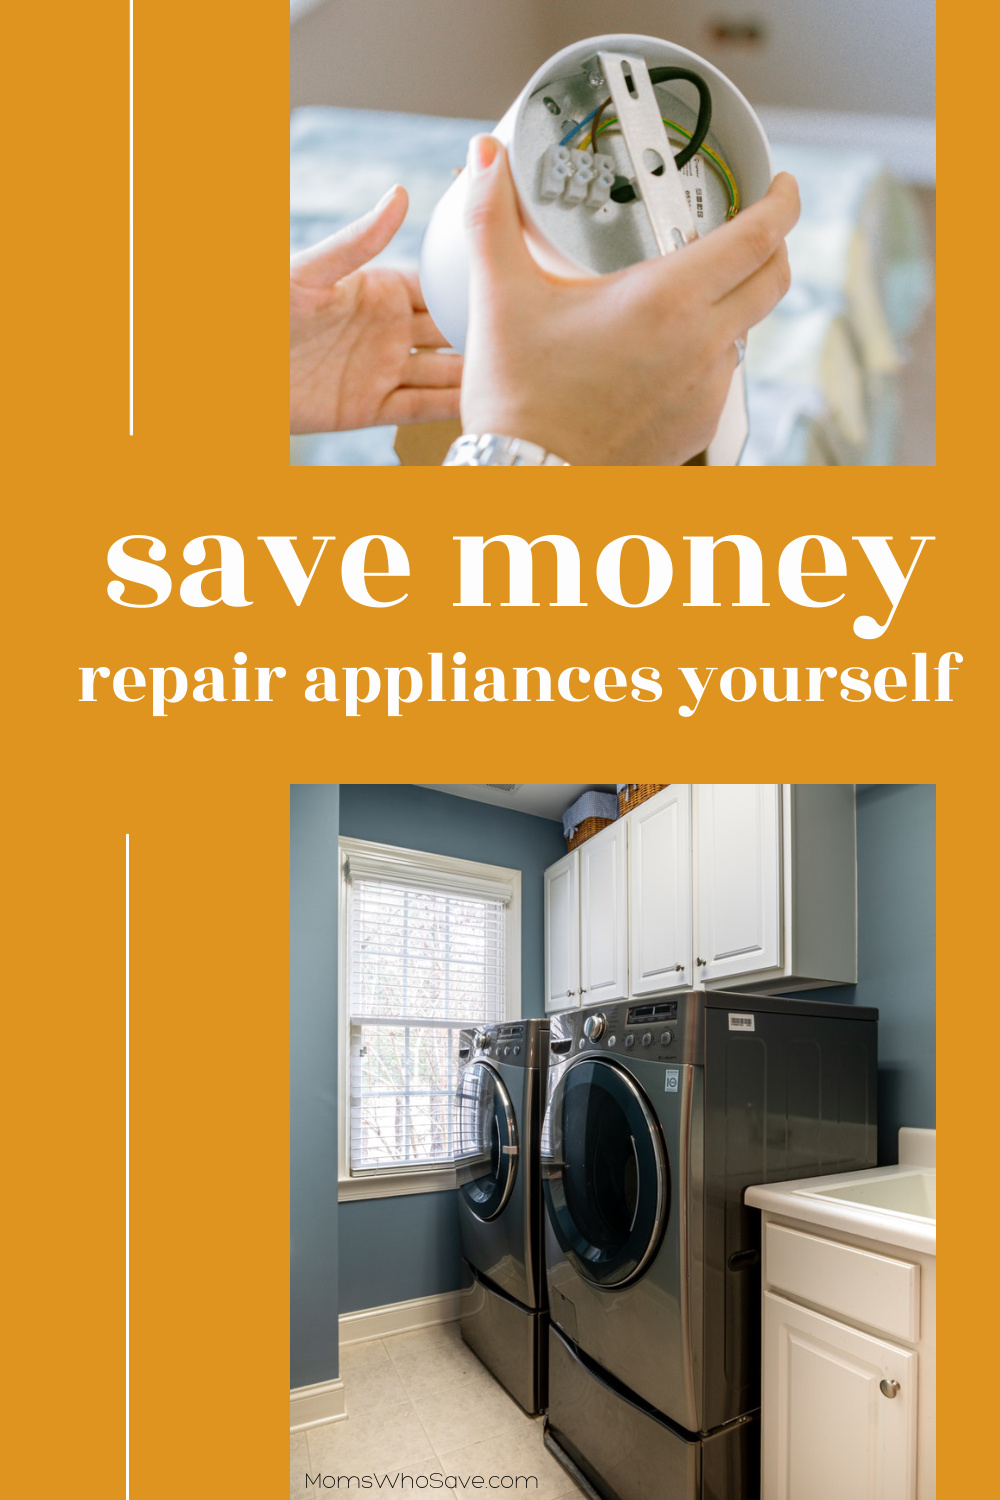 do-it-yourself appliance repair